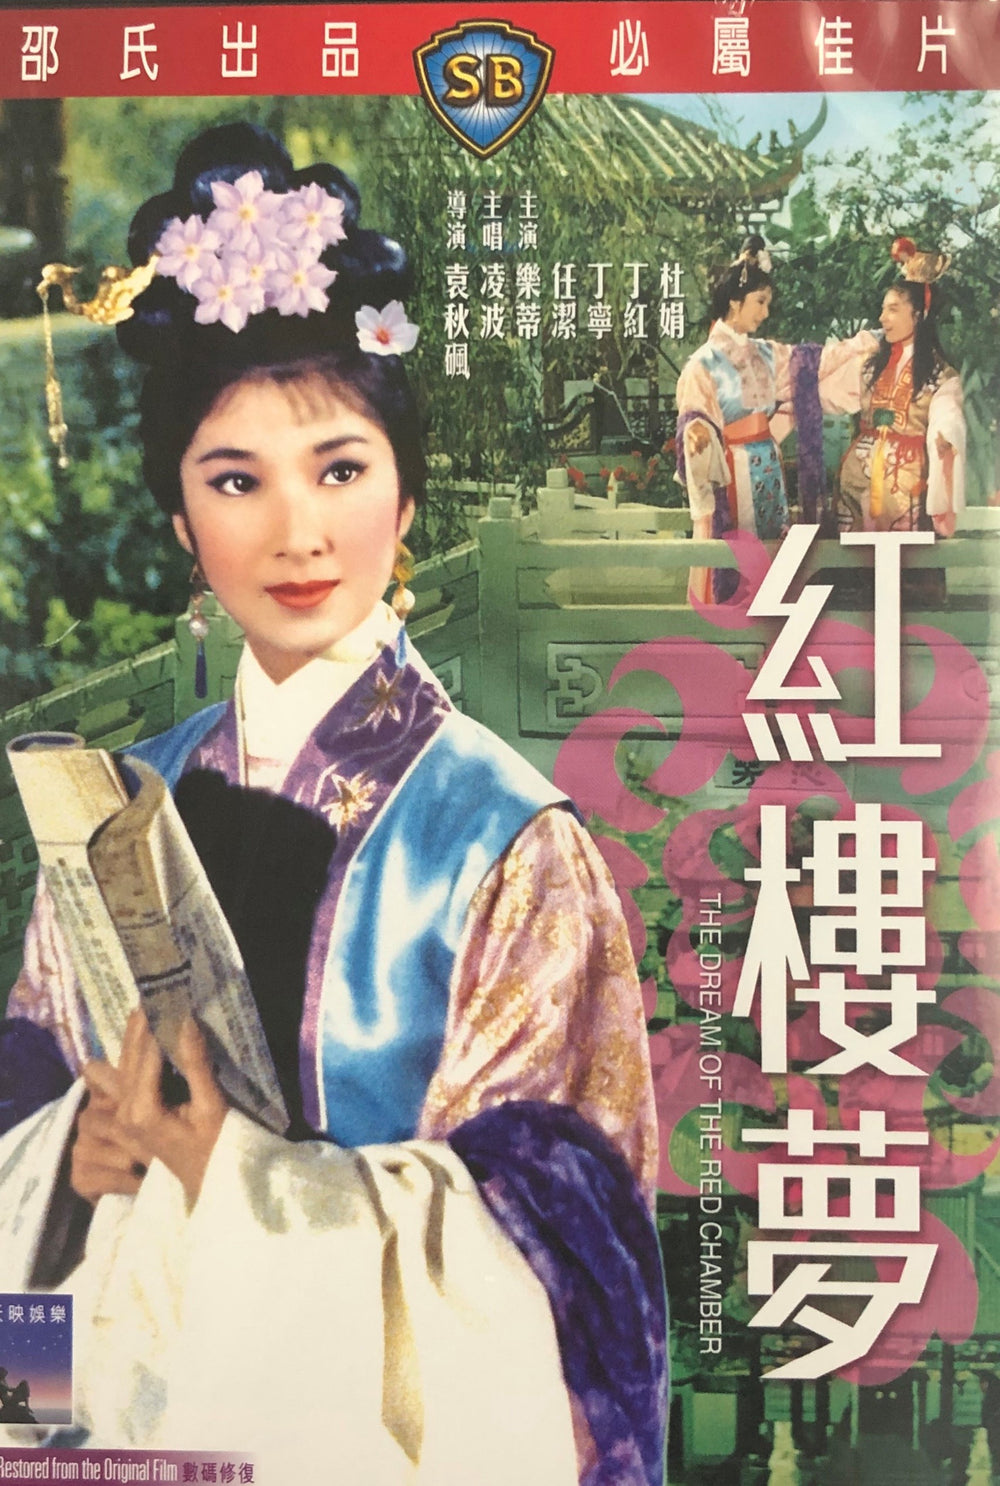 THE DREAM OF THE RED CHAMBER 紅樓夢 1961 (Shaw Bros) DVD WITH ENGLISH SUBTITLES (REGION 3)